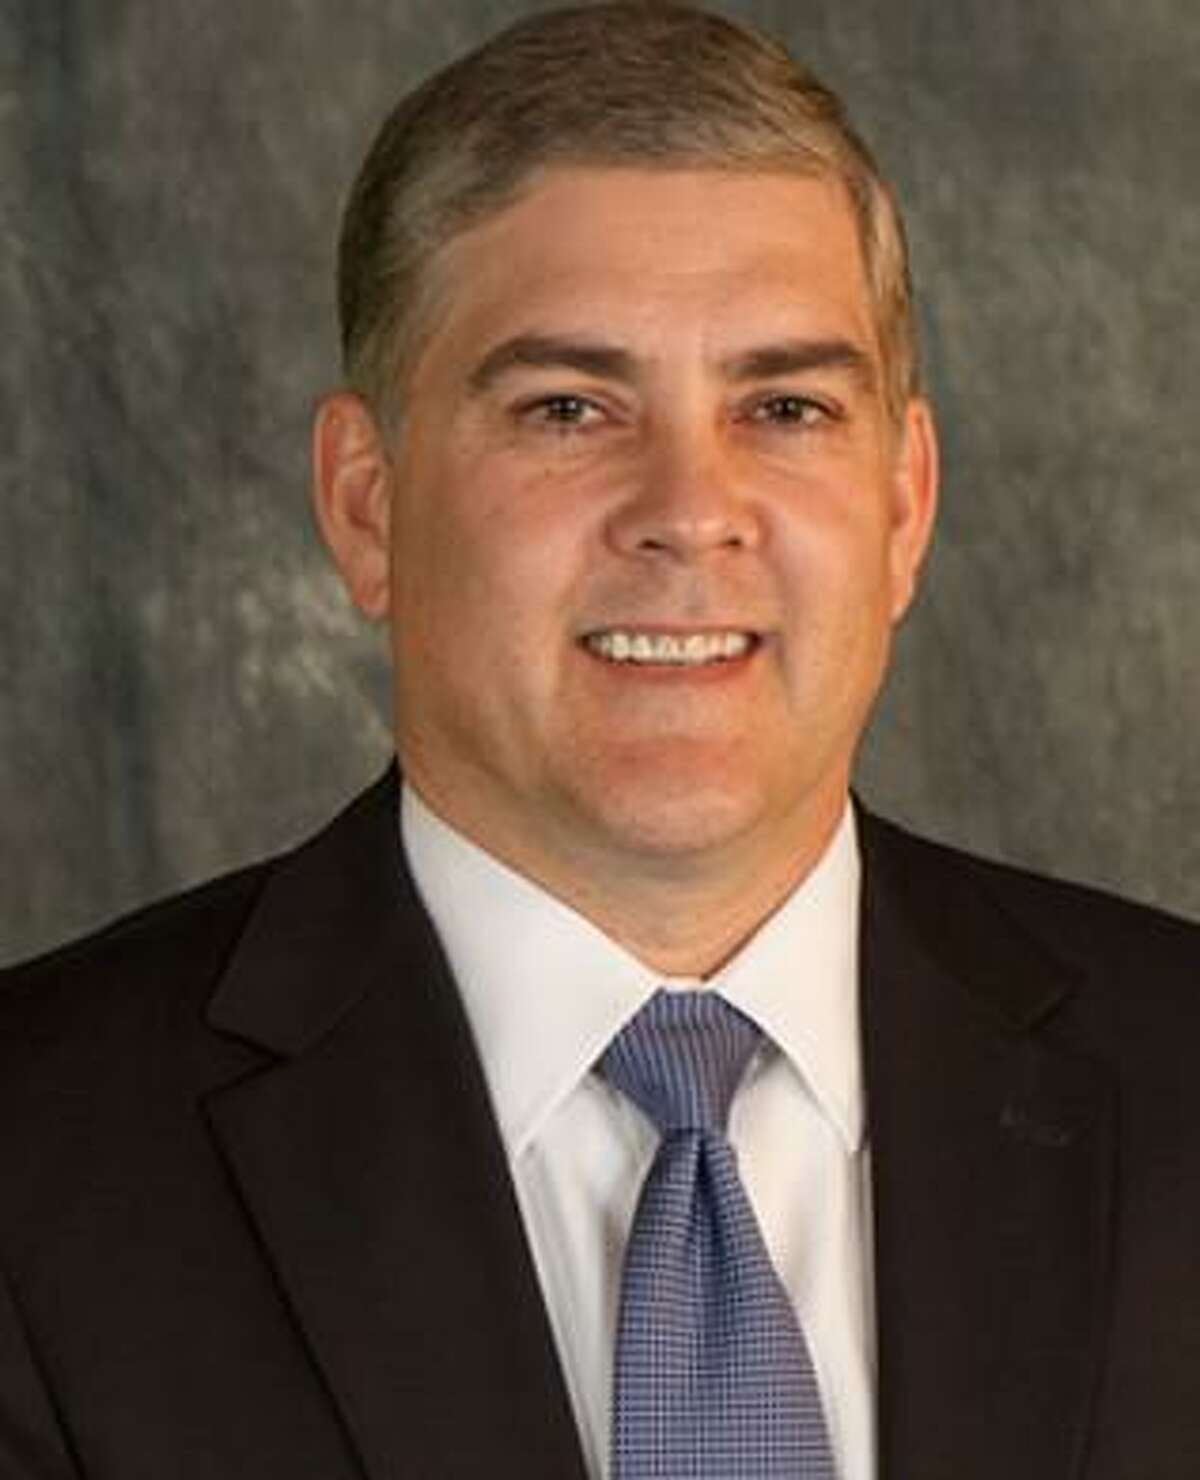 Jeff Jones, the deputy city manager of Dallas suburb Mesquite, was named in June as the new general manager and president of The Woodlands. He replaced Don Norrell, who agreed to remain on the job until Sept. 4. Jones is began work on Aug. 31.